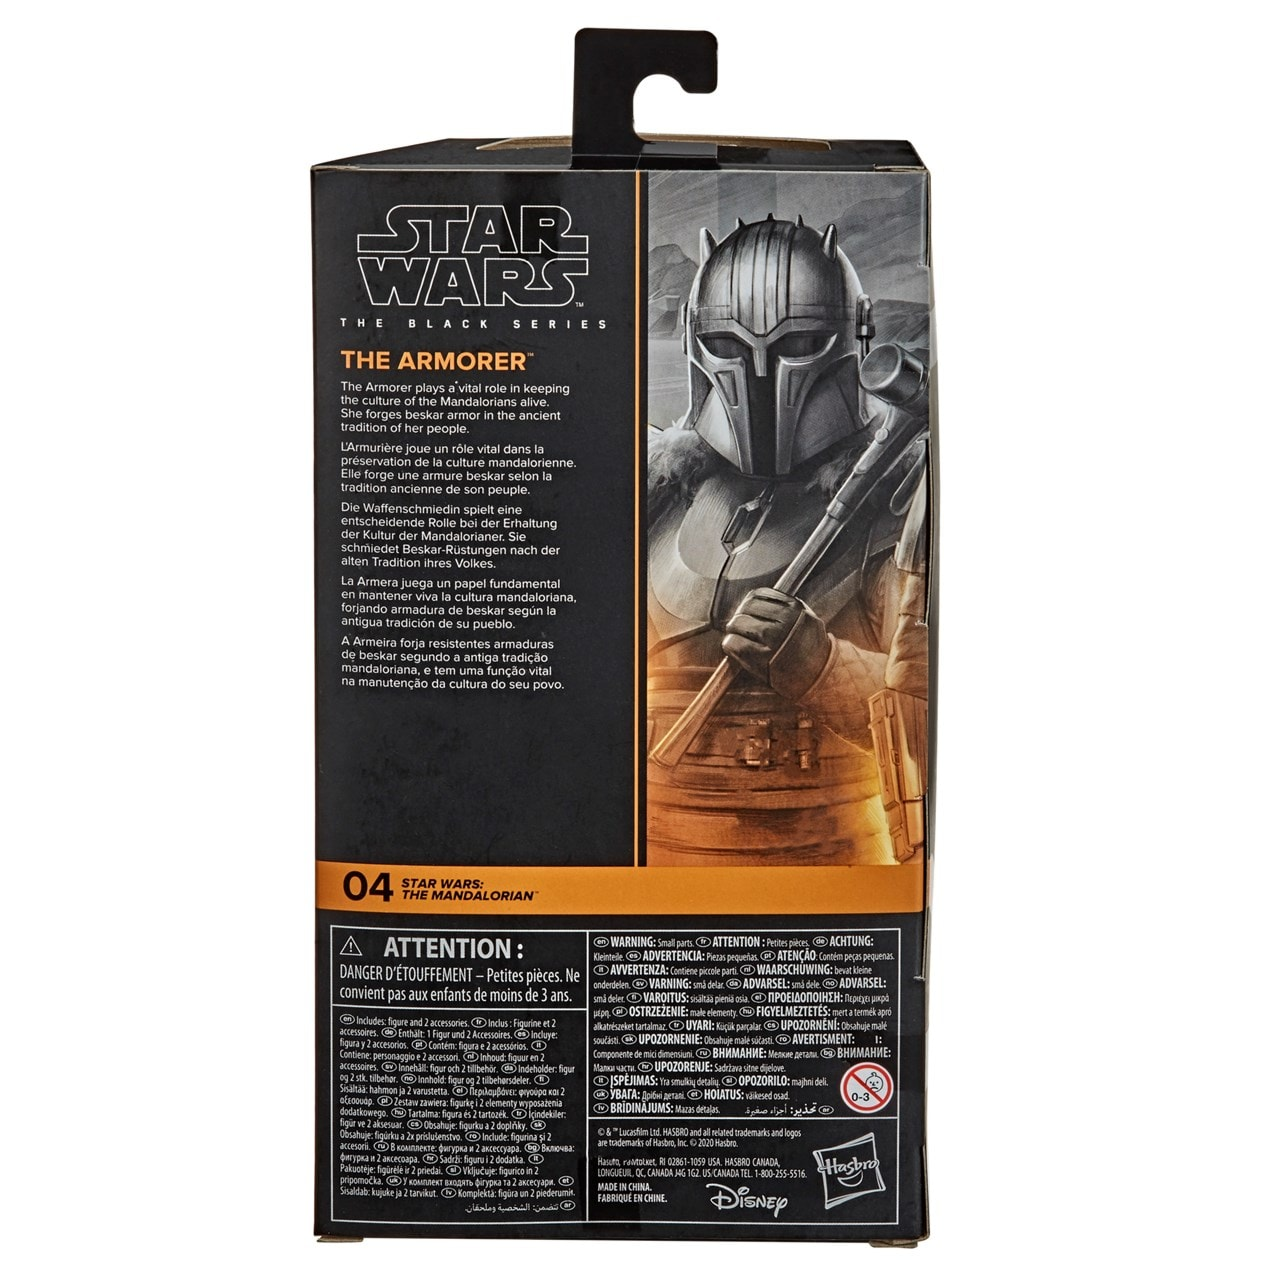 The Armorer: The Mandalorian: The Black Series: Star Wars Action Figure - 5